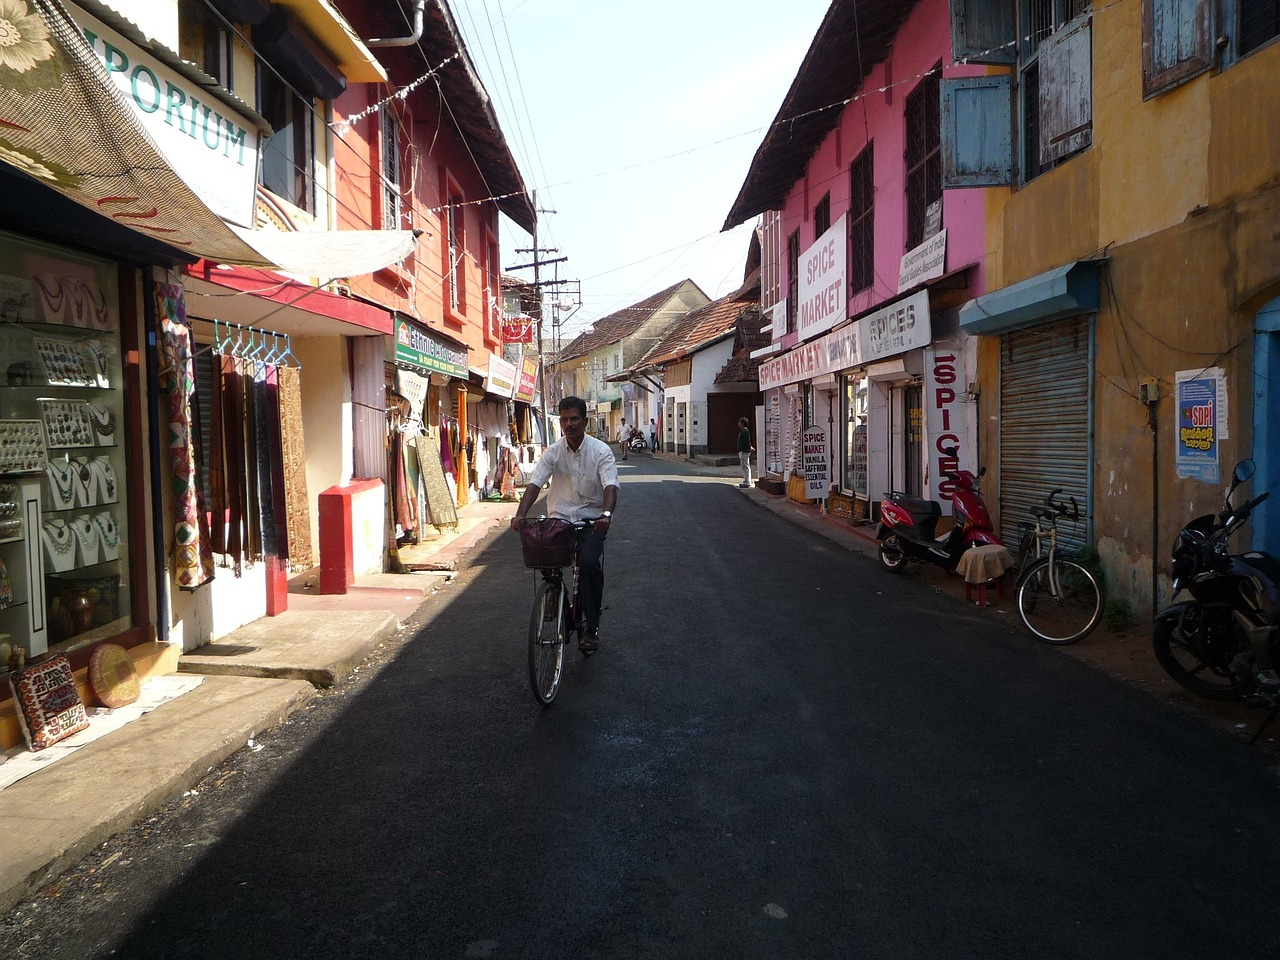 old fort of Kochi in Kerala, India - The best places to see in Kerala - A complete travel guide to Kerala